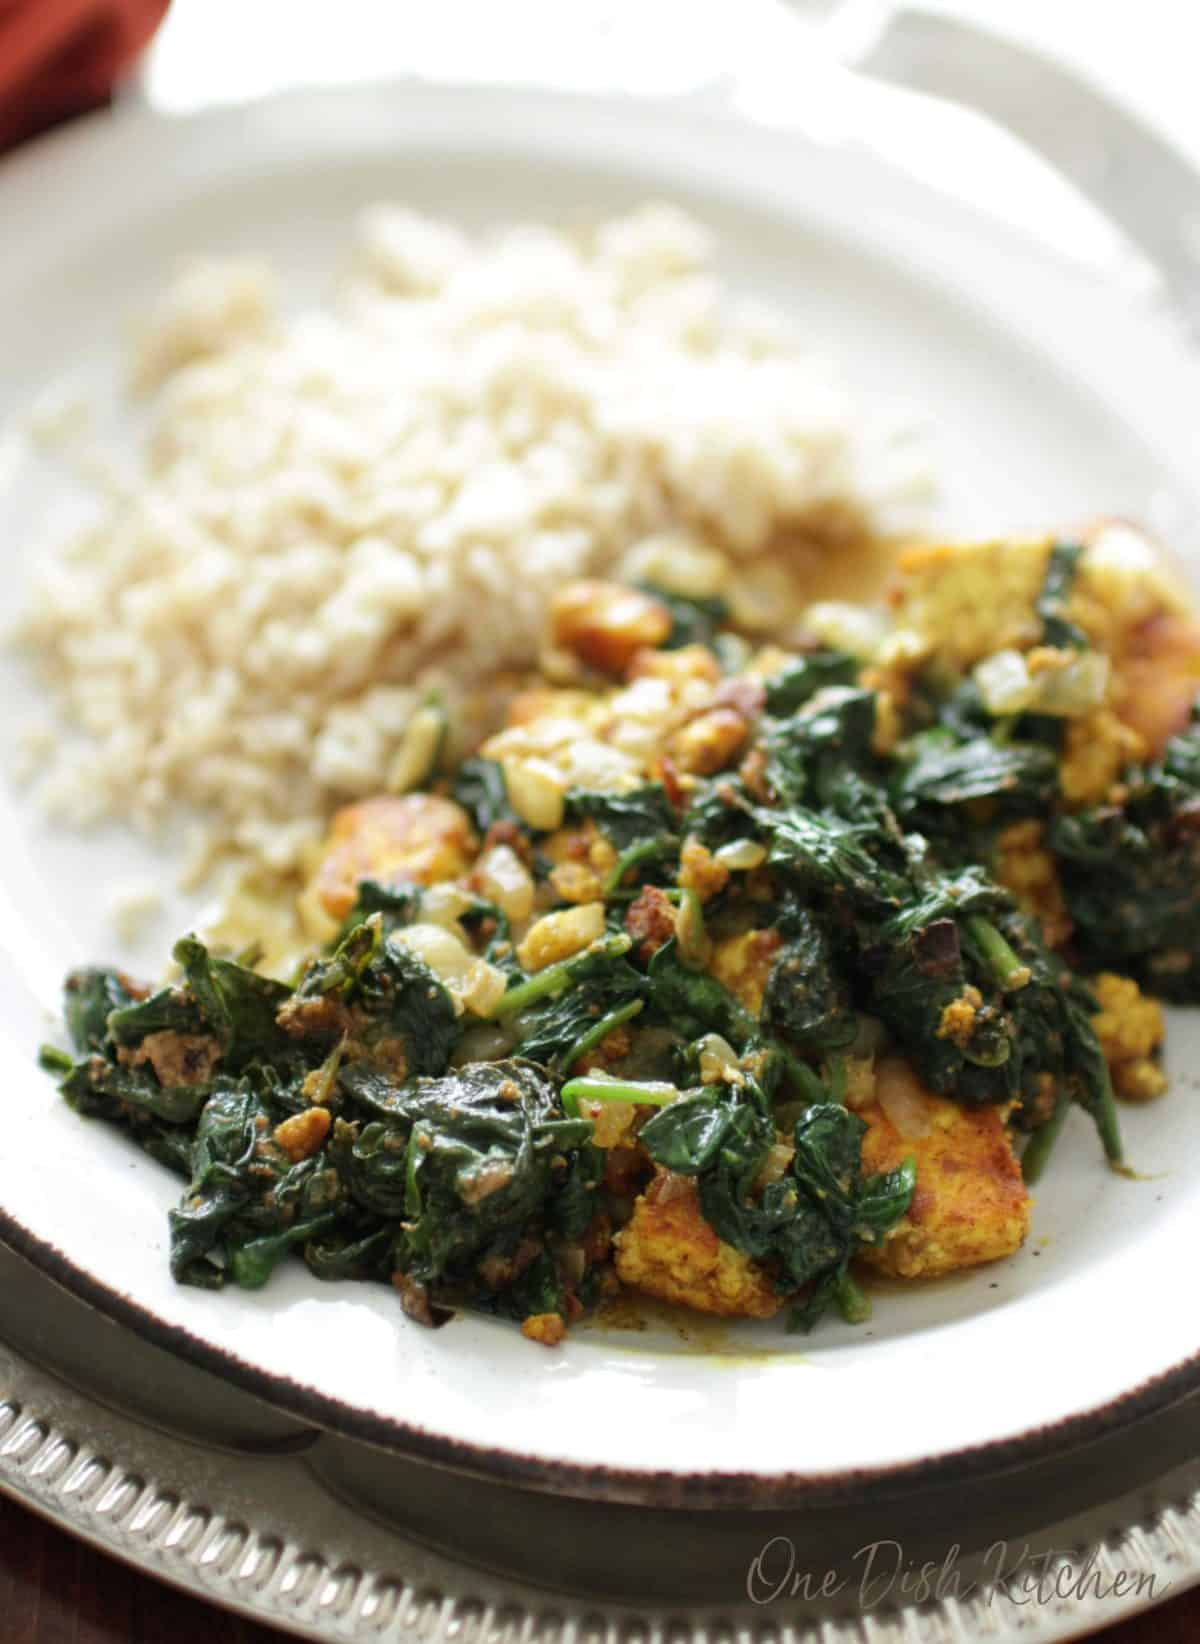 Spinach and cubes of paneer on a plate with white rice.